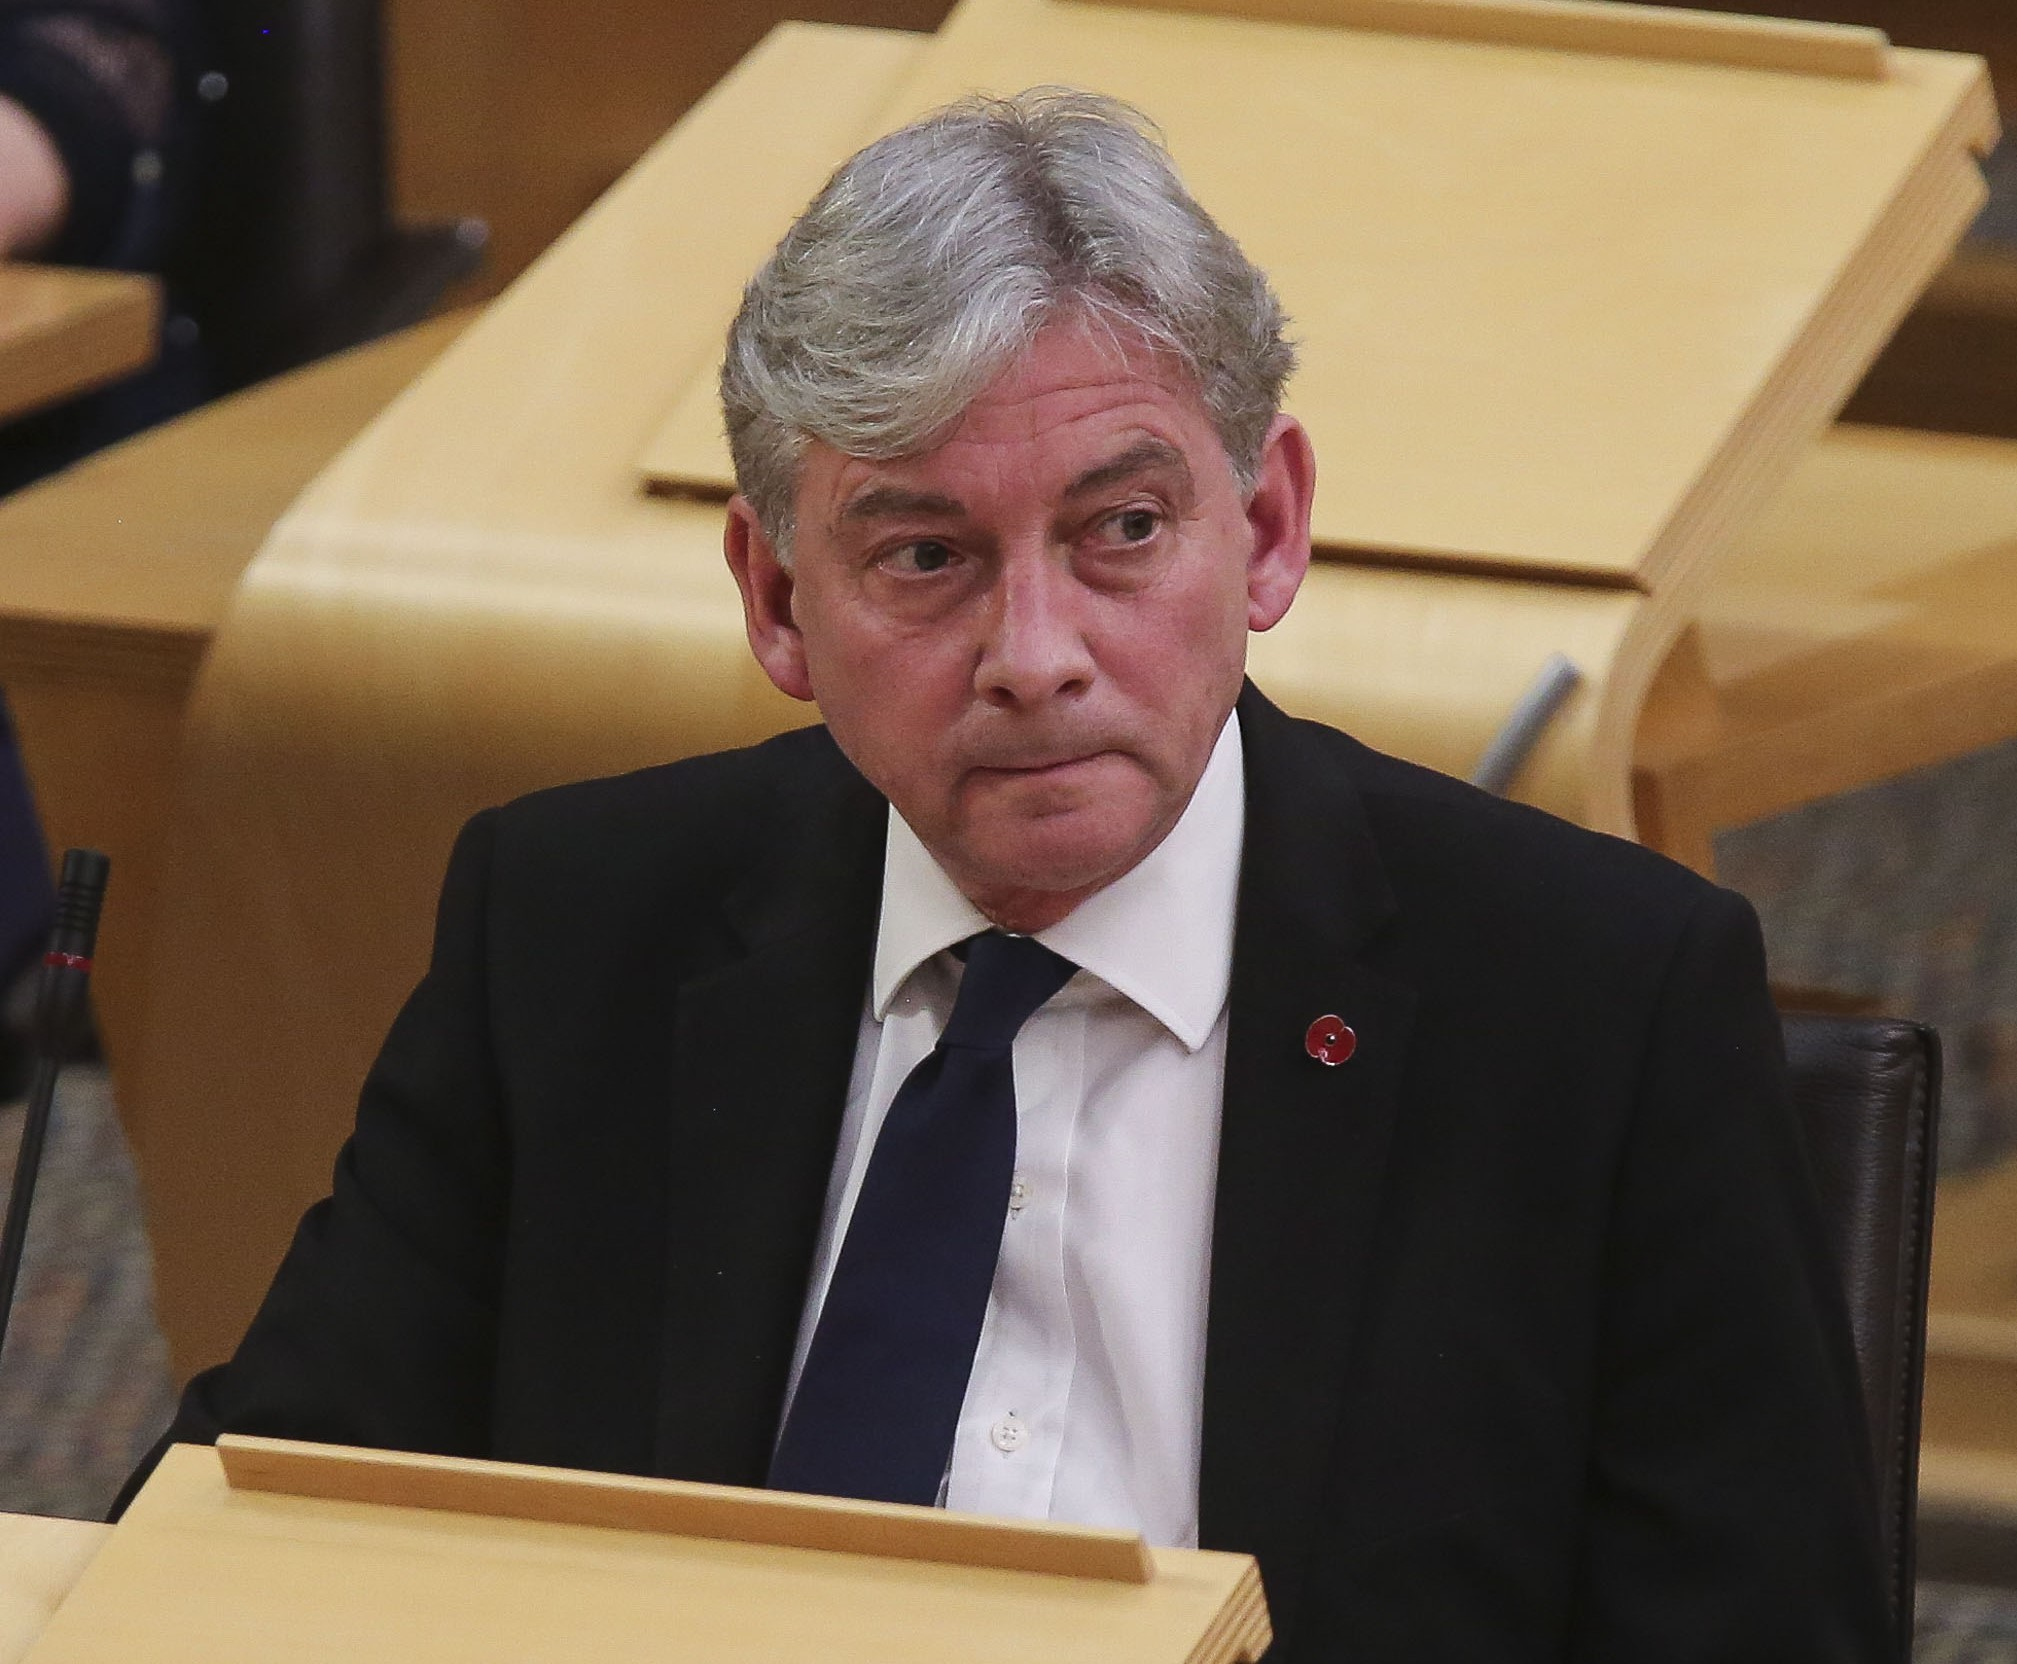 Labour try to oust Richard Leonard again, fearing election